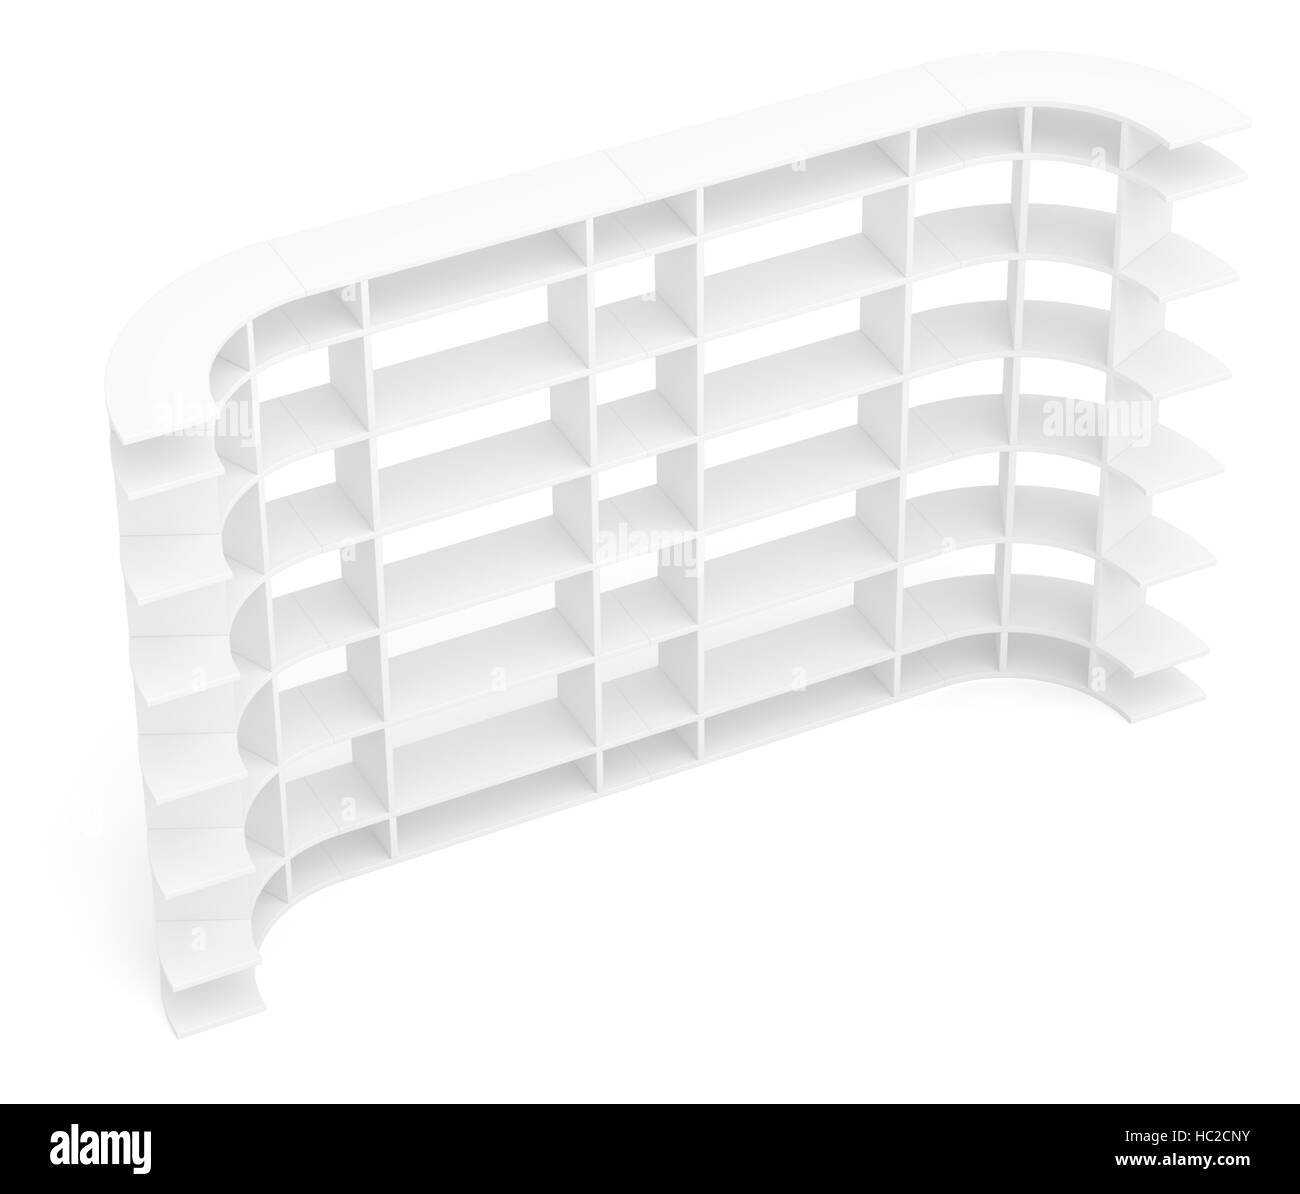 Big empty book shelves or rack. Top view - Stock Image